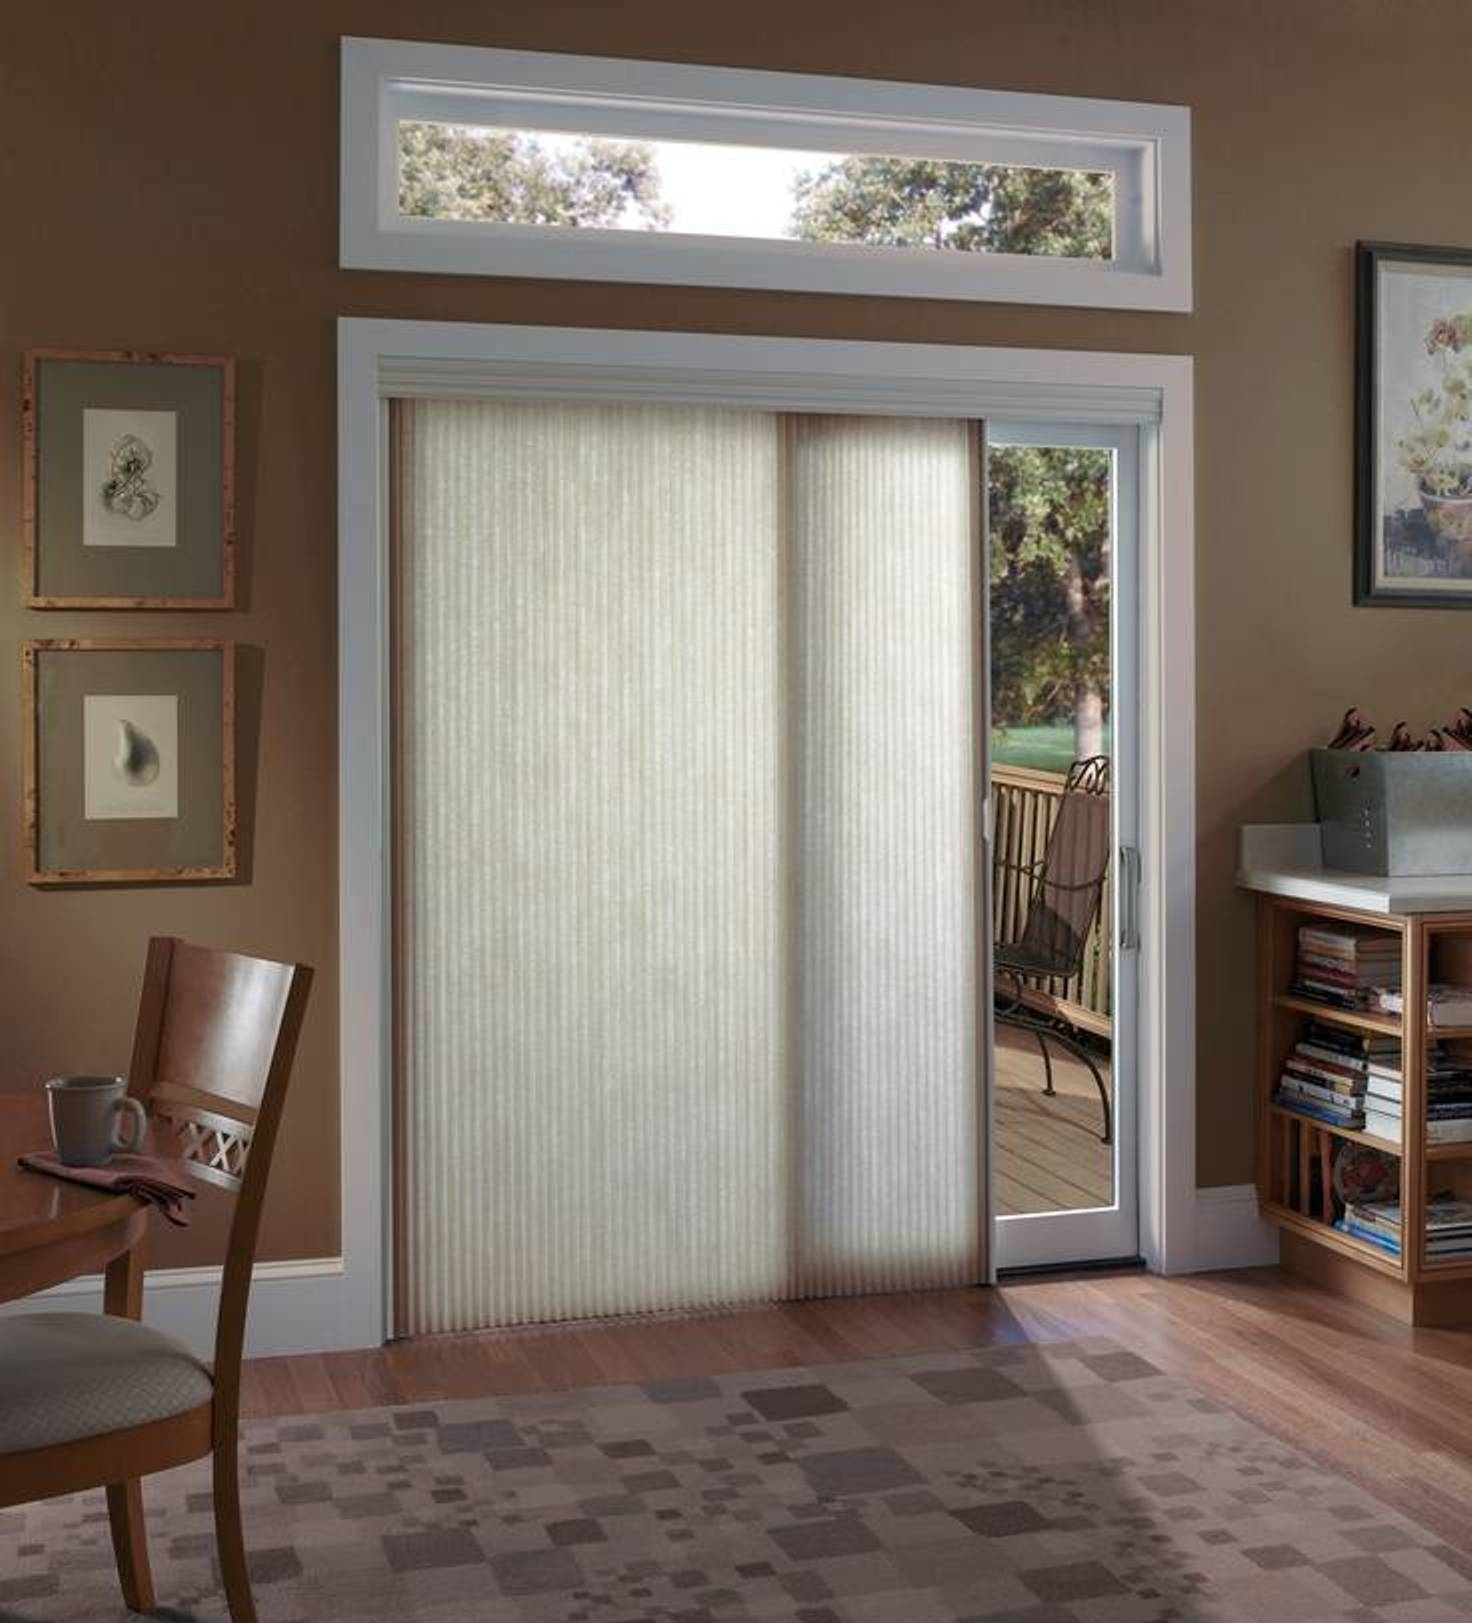 Wall Coverings For Sliding Glass DoorsWall Coverings For Sliding Glass Doors